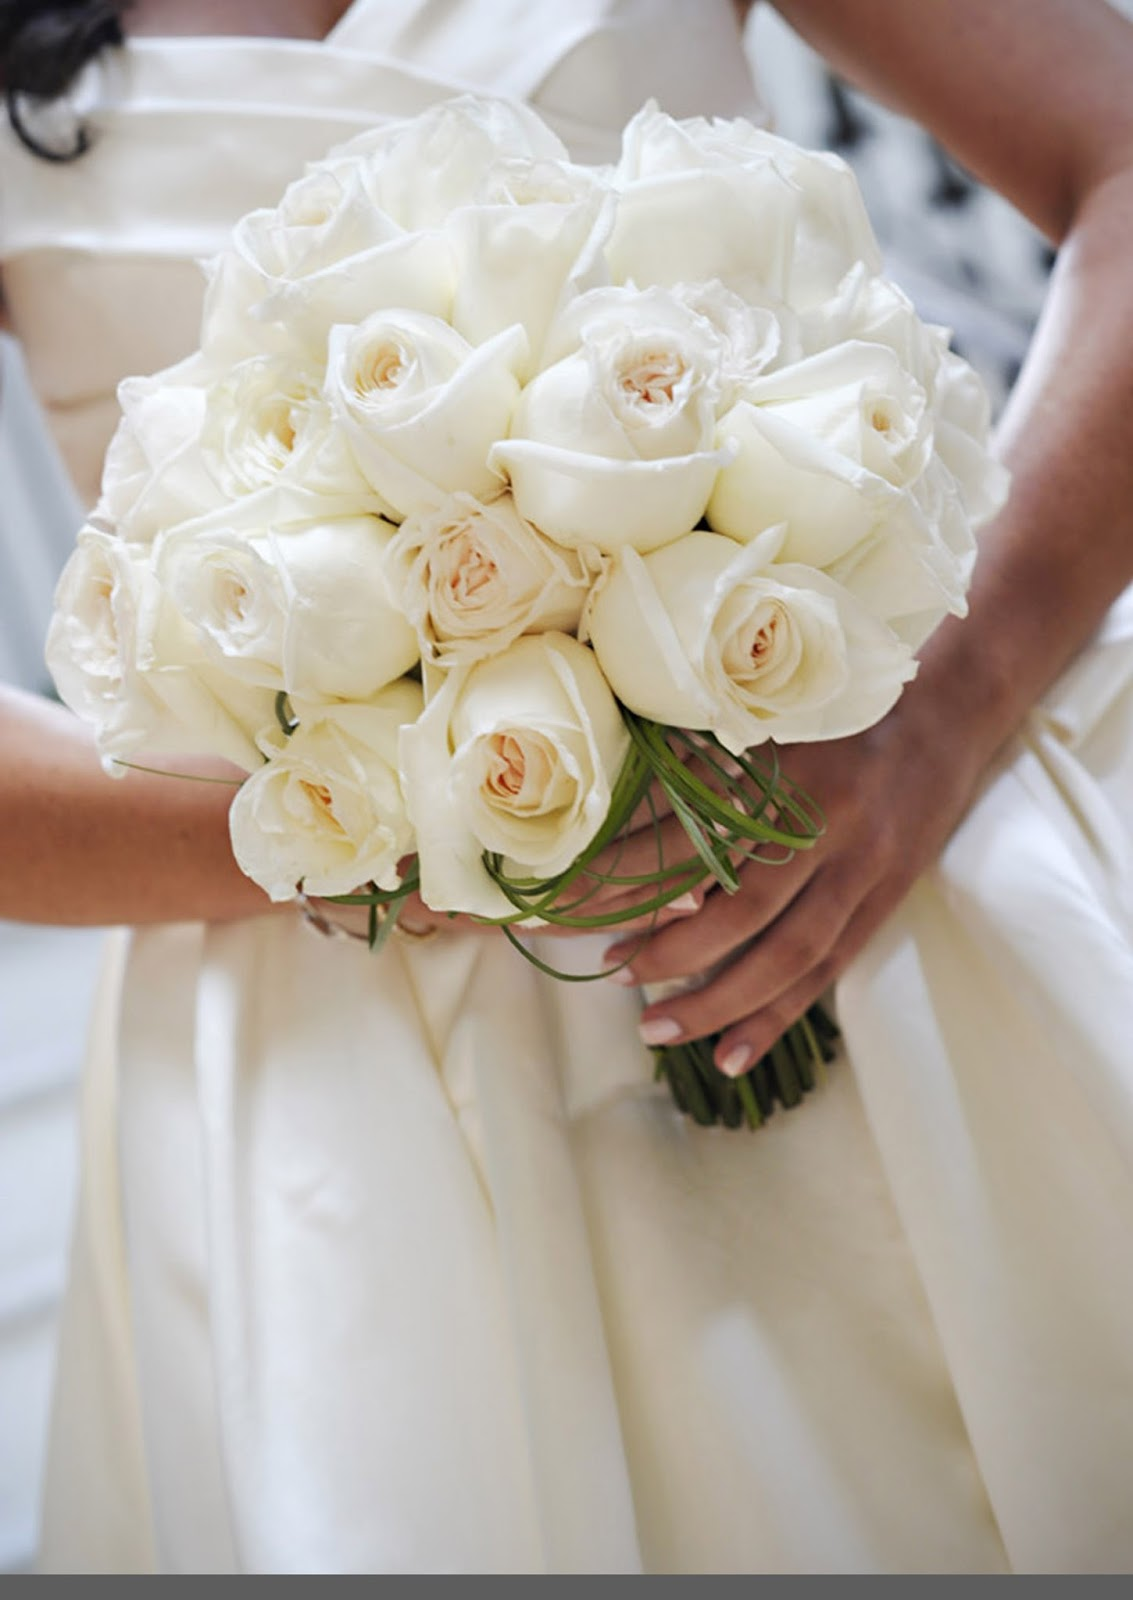 choosing the perfect wedding bouquet Wedding bouquets editor picks how to choose the right wedding cakes for beach wedding how to choose the right wedding cake how to how to choose the perfect.